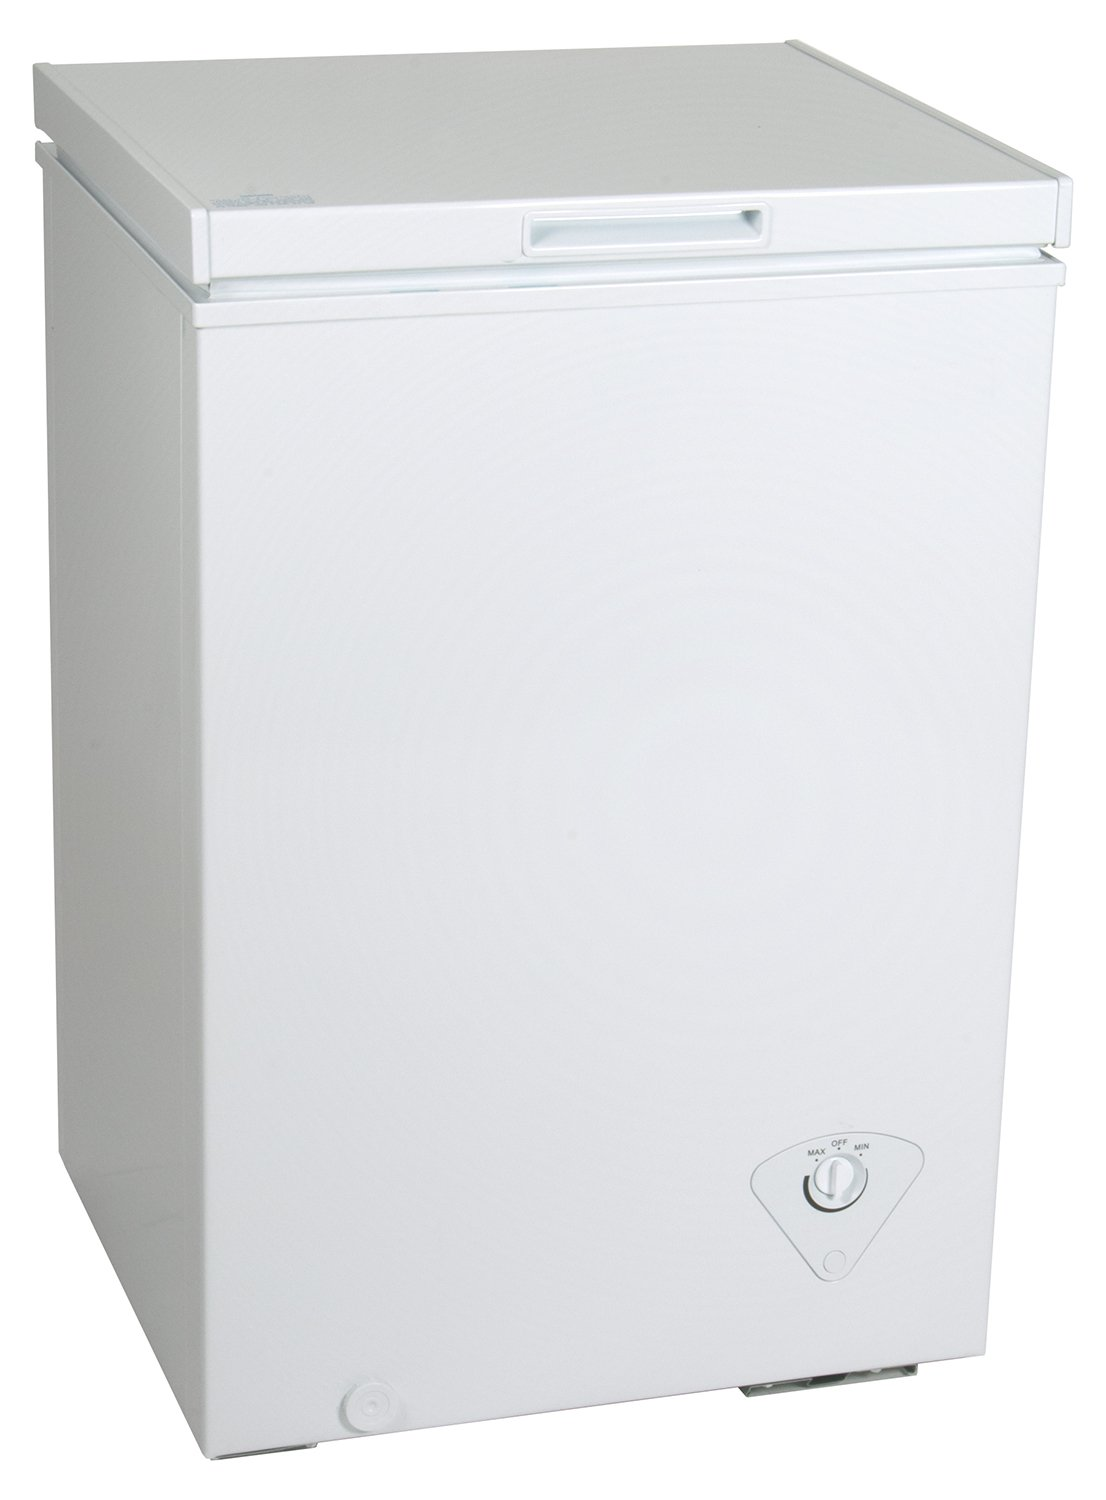 Koolatron KTCF99 3.5 cu. ft. Chest Freezer, White Koolatron (Kitchen)